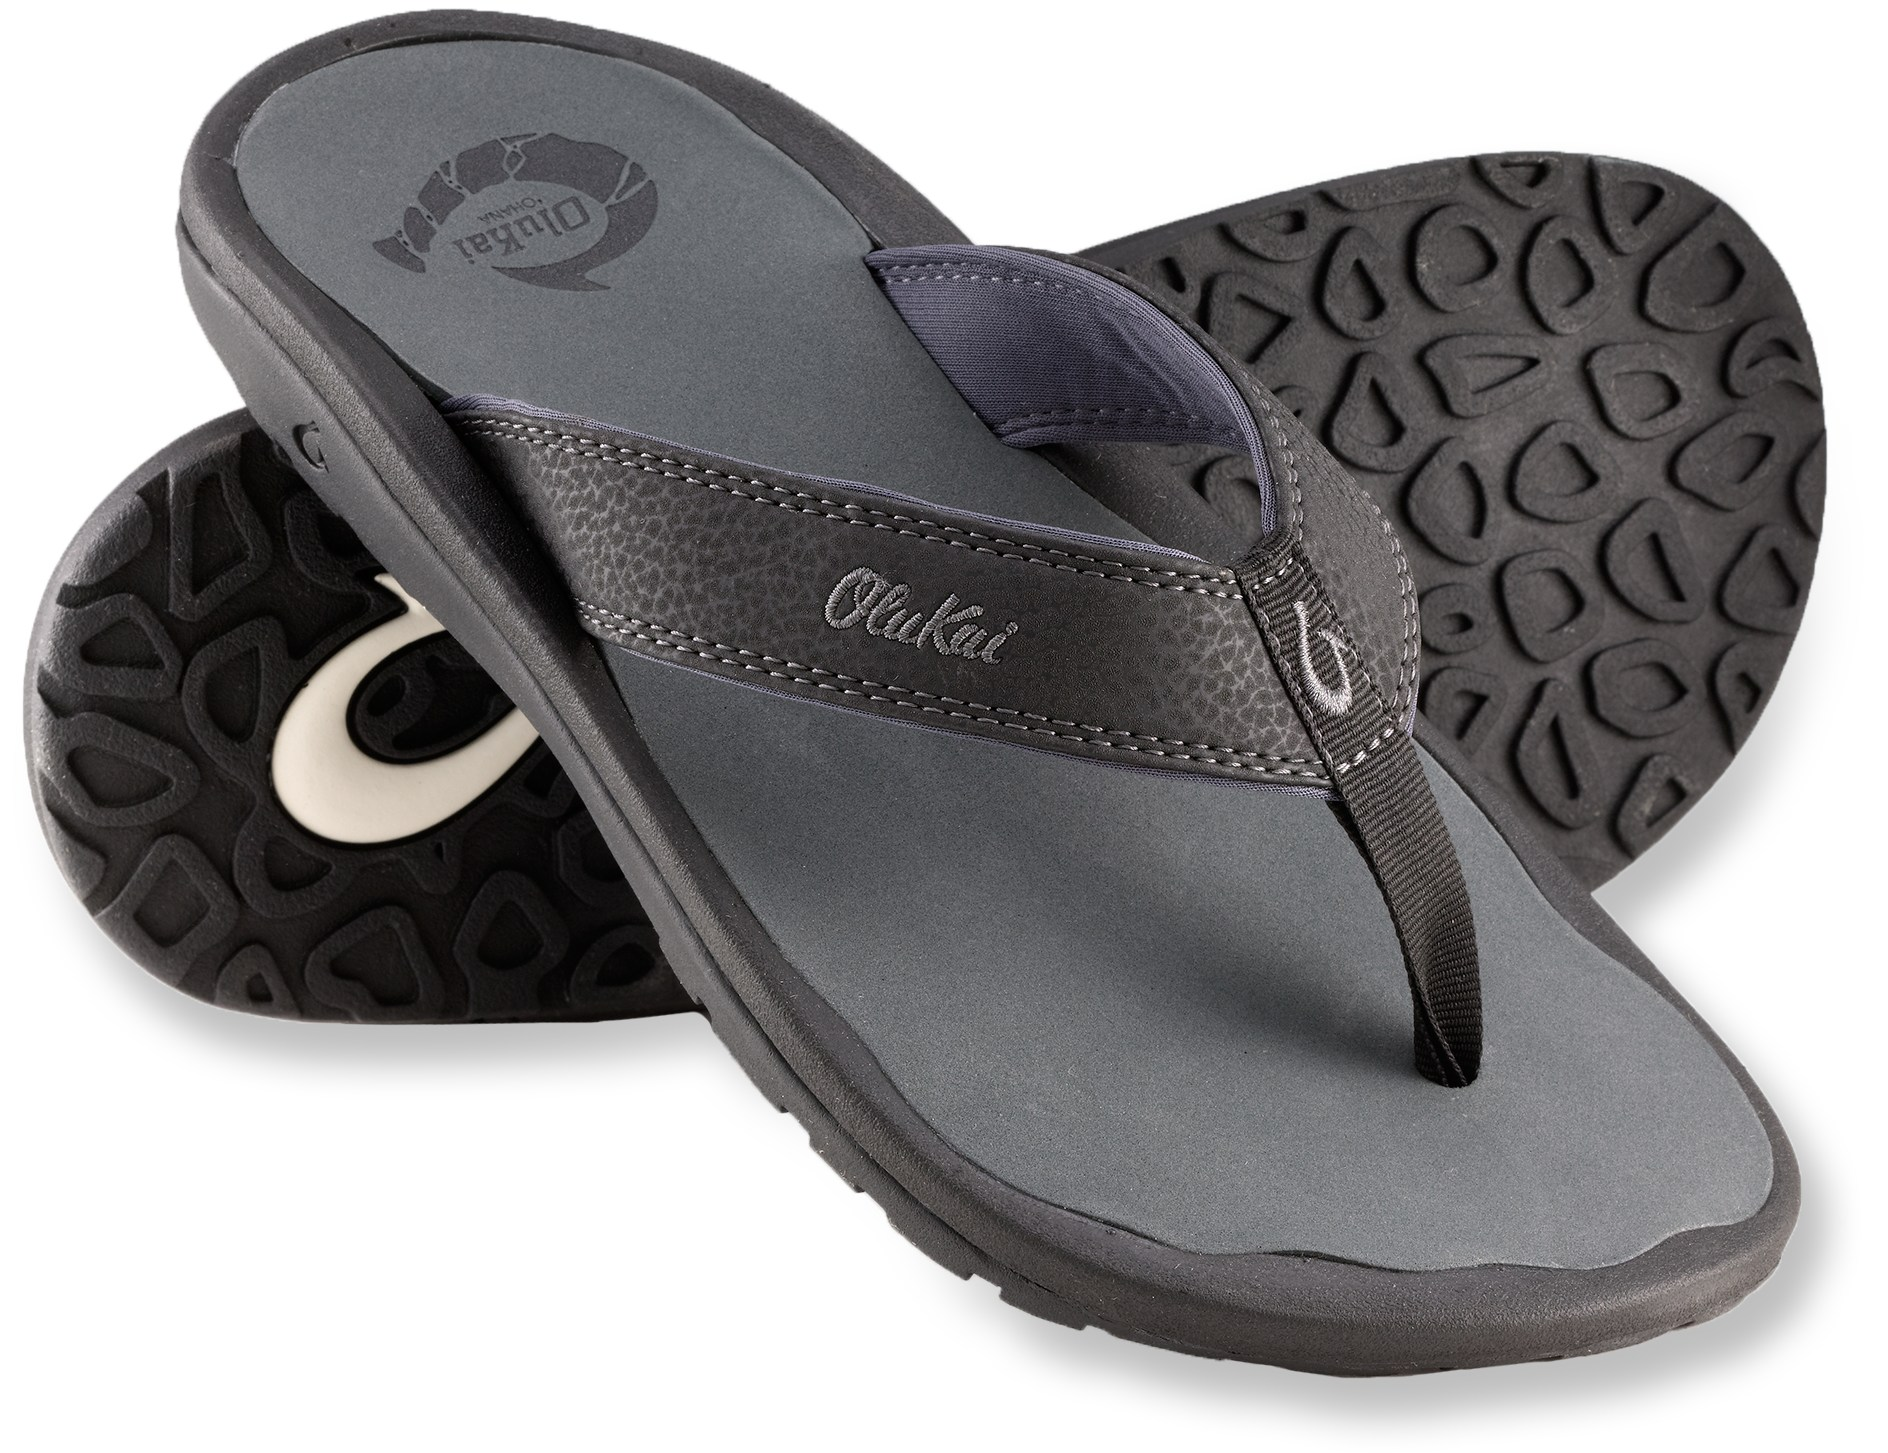 Shop Men's Flip-flops on Lyst. Track over Flip-flops items for stock and sale updates. Find the best selection online across all the best stores.